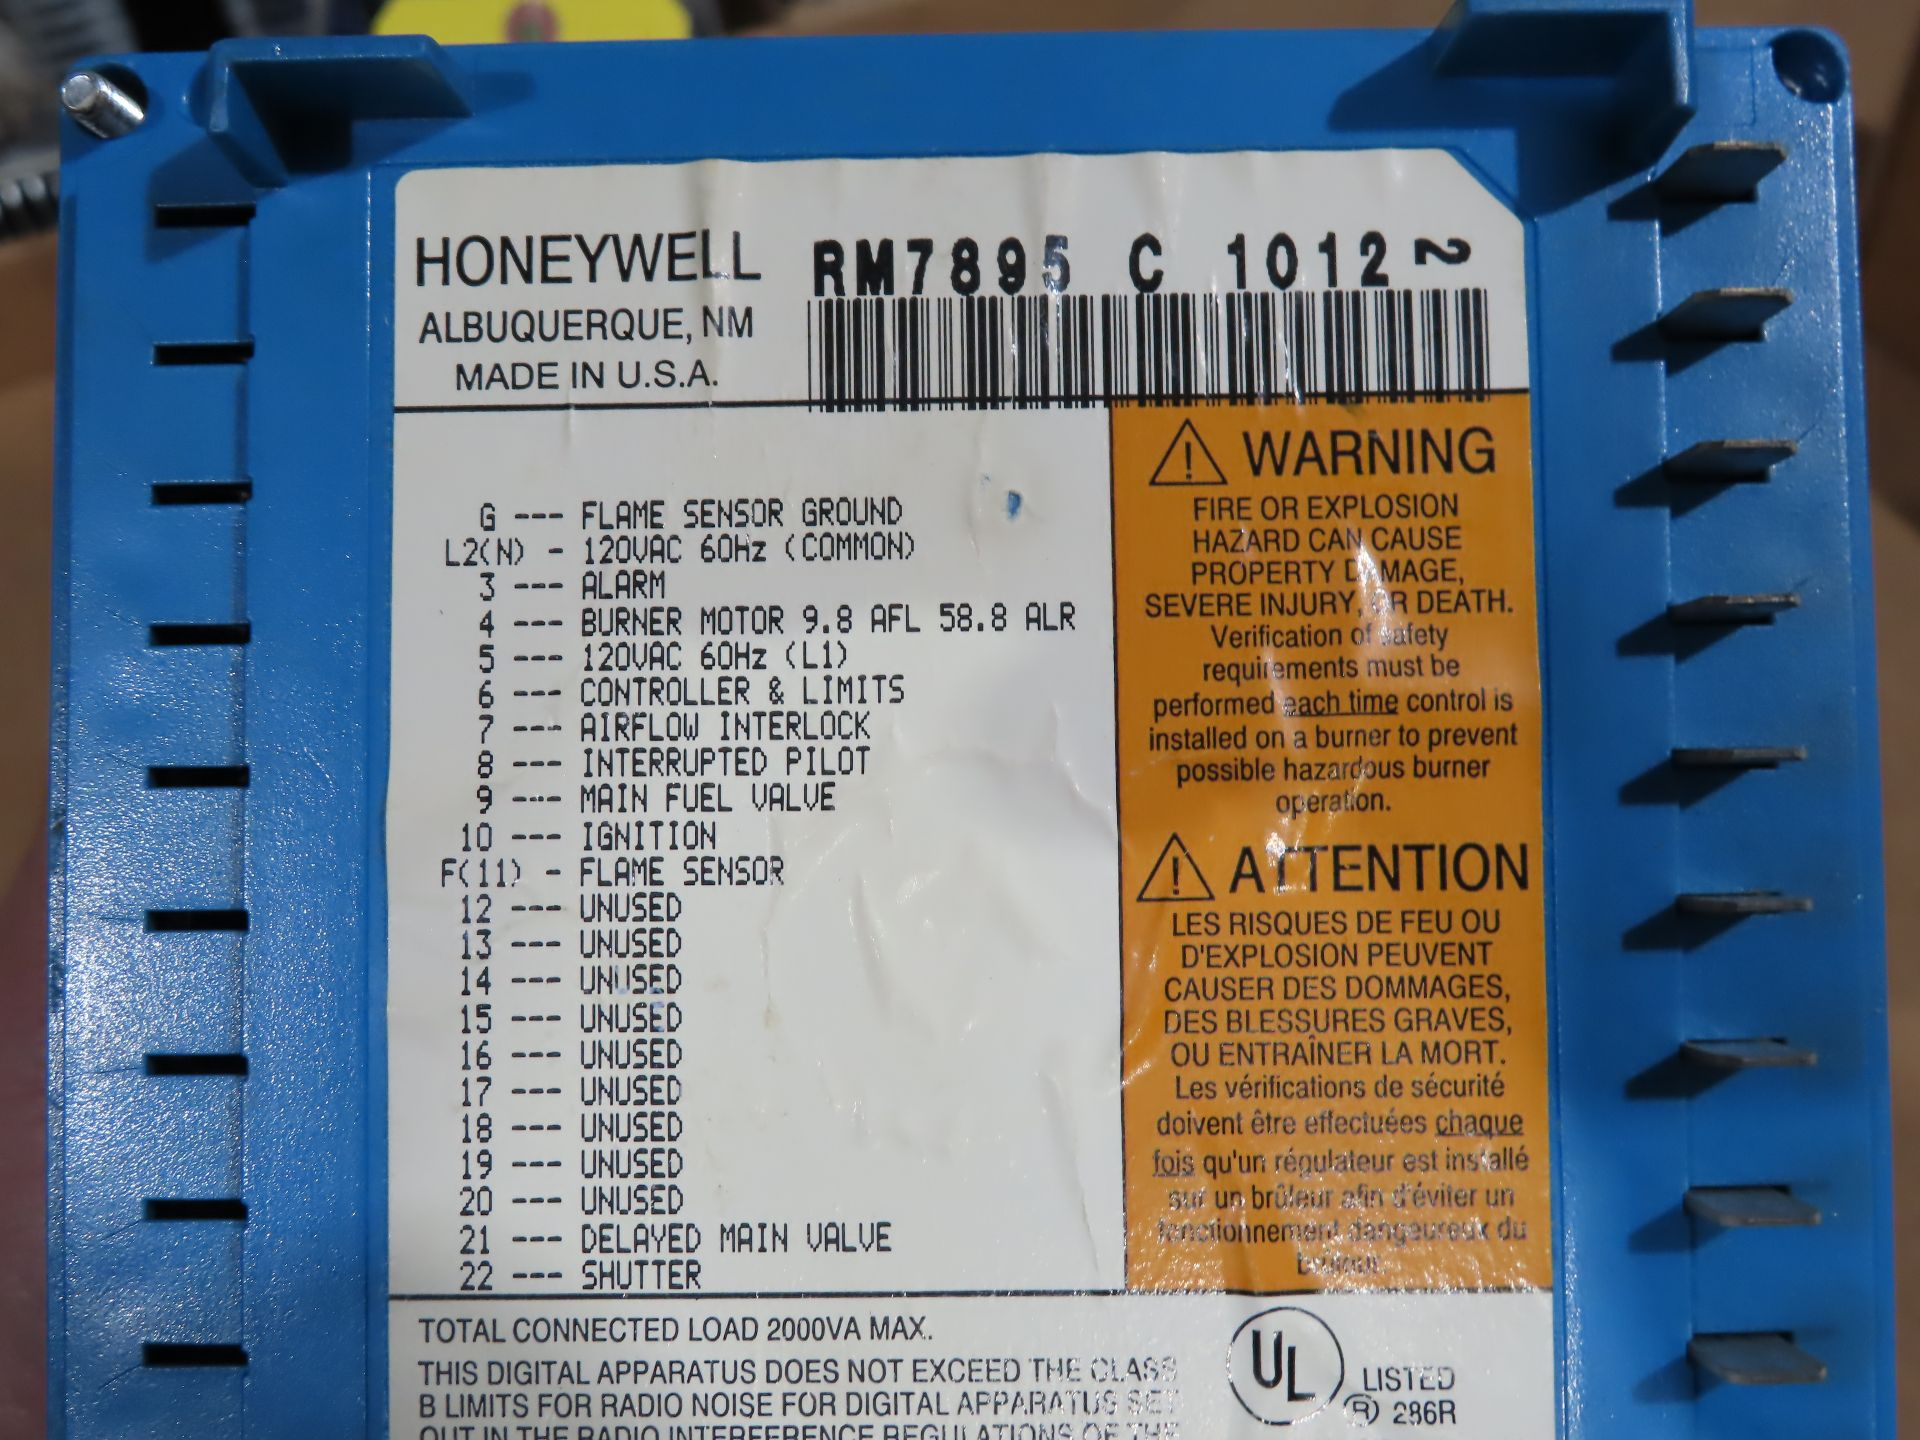 Lot 6 - Honeywell burner control model RM7895-C-1012, used, as always, with Brolyn LLC auctions, all lots